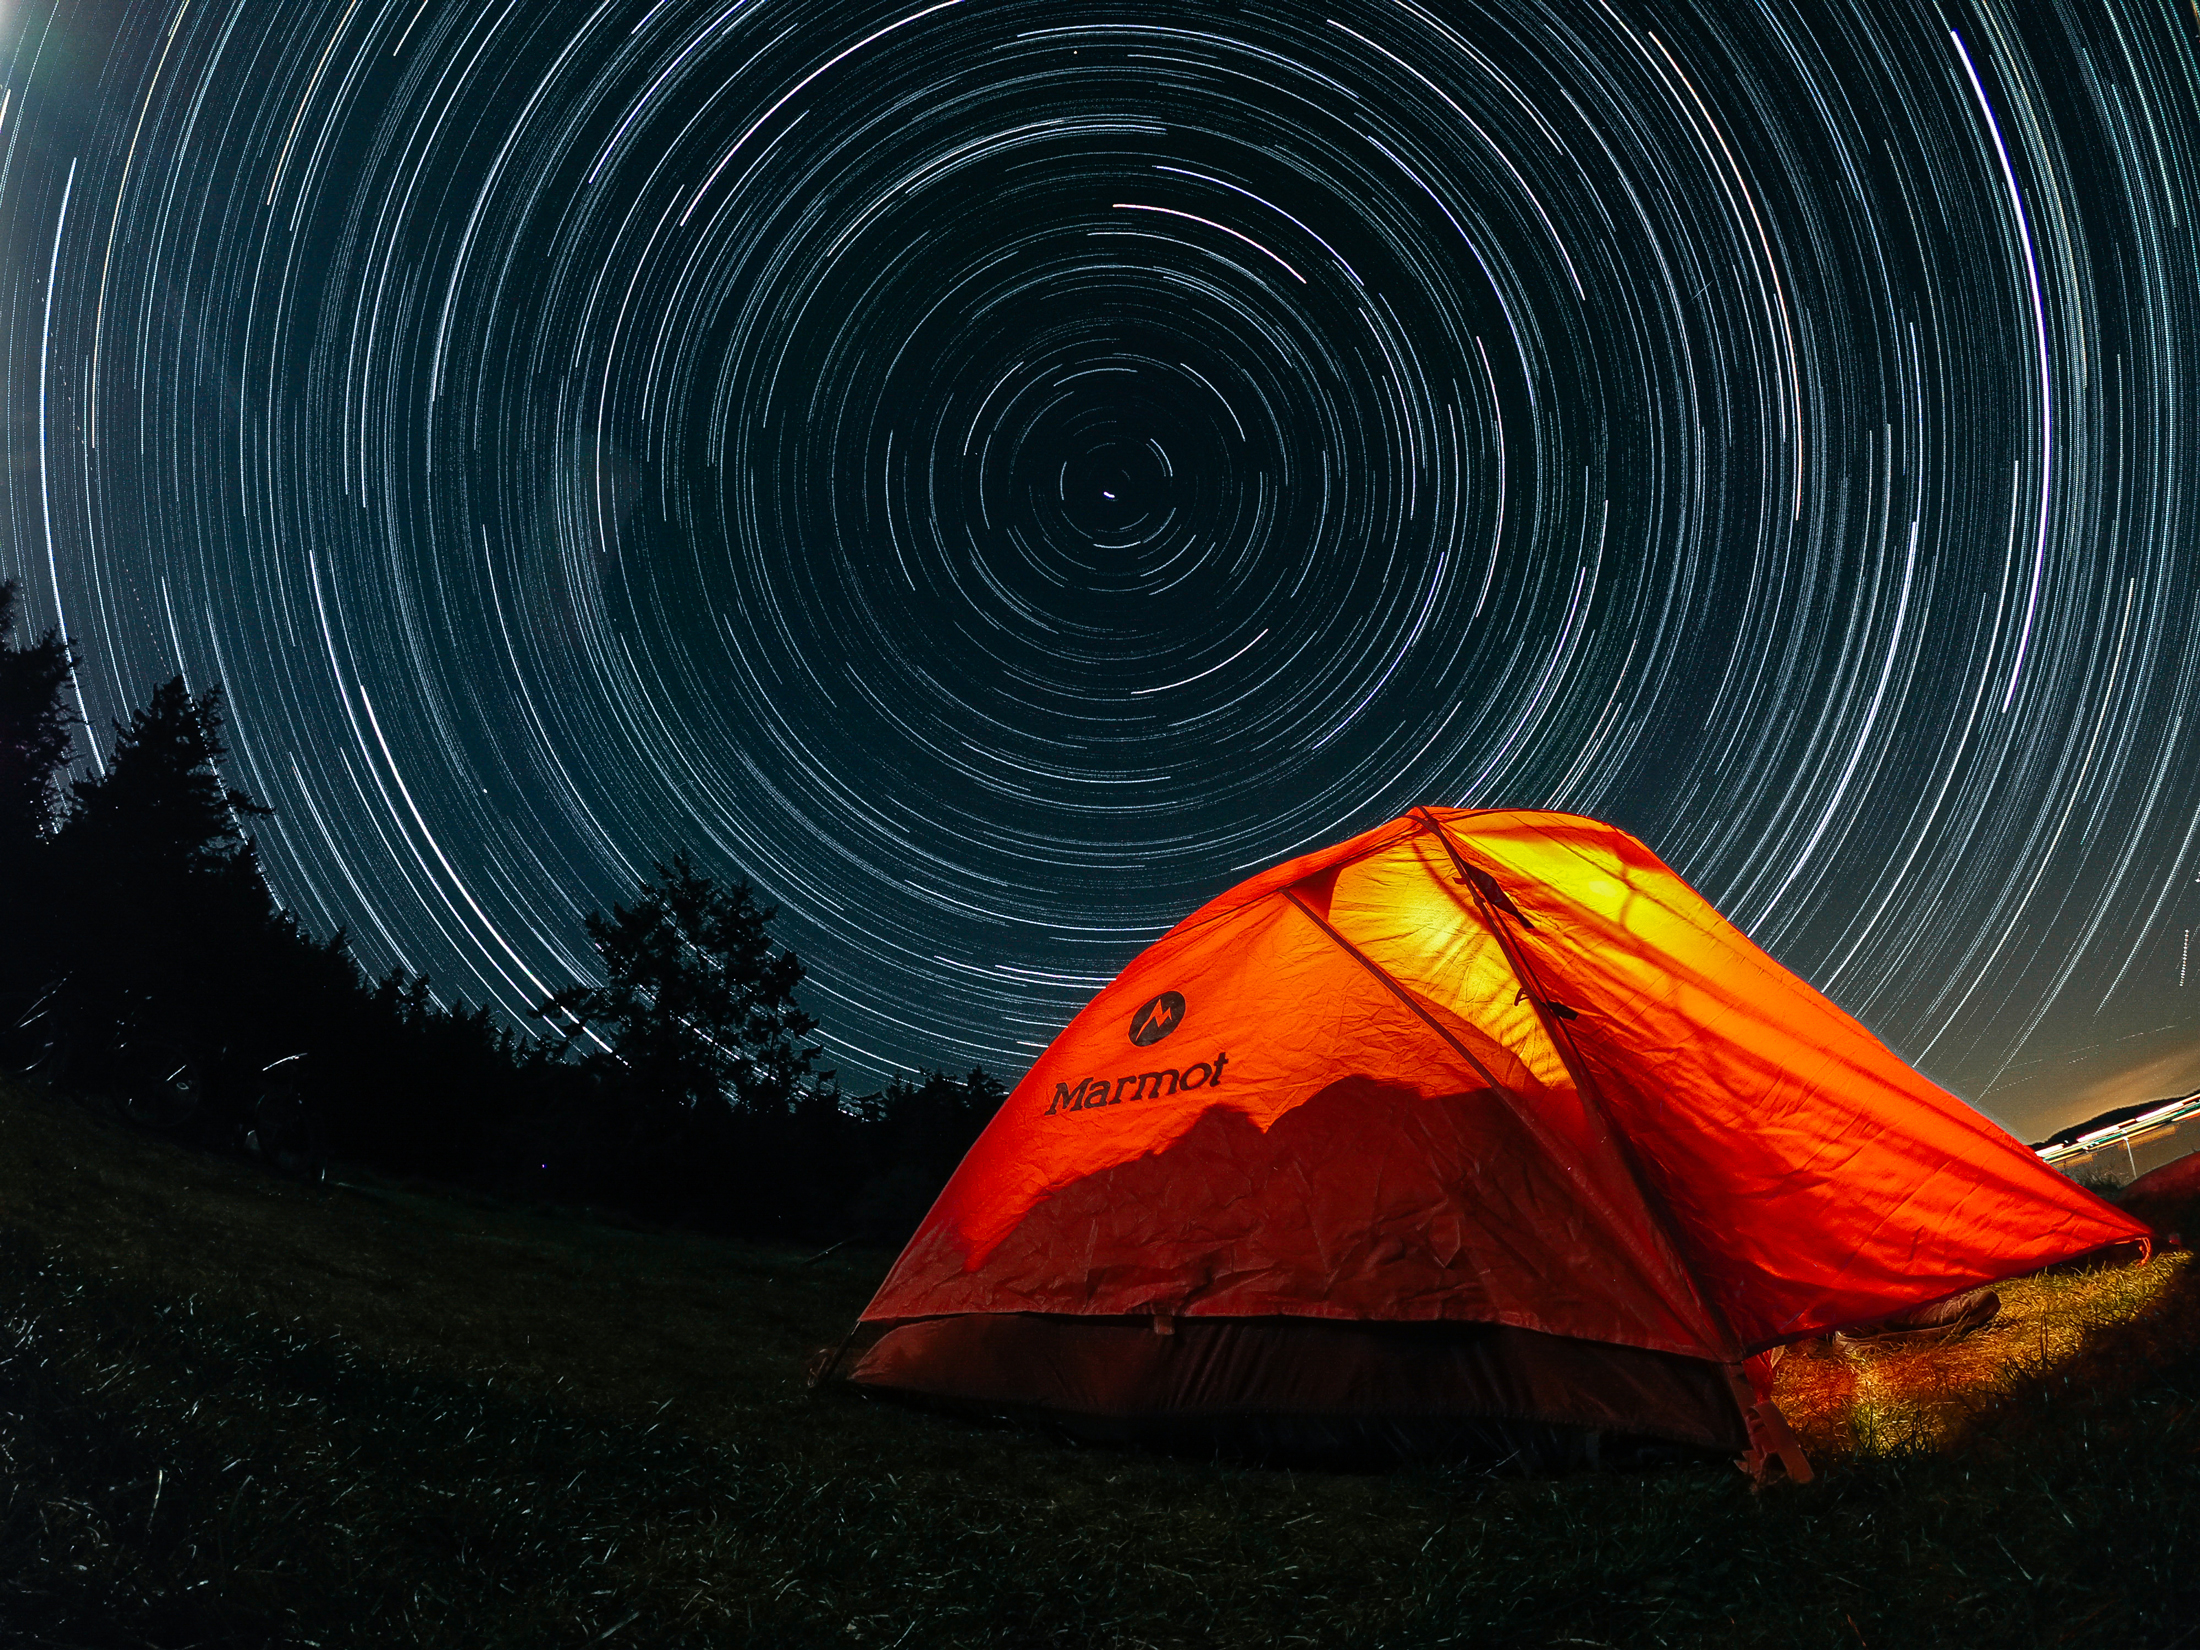 time lapse of stars over Marmot tent with GoPro HERO10 Black camera